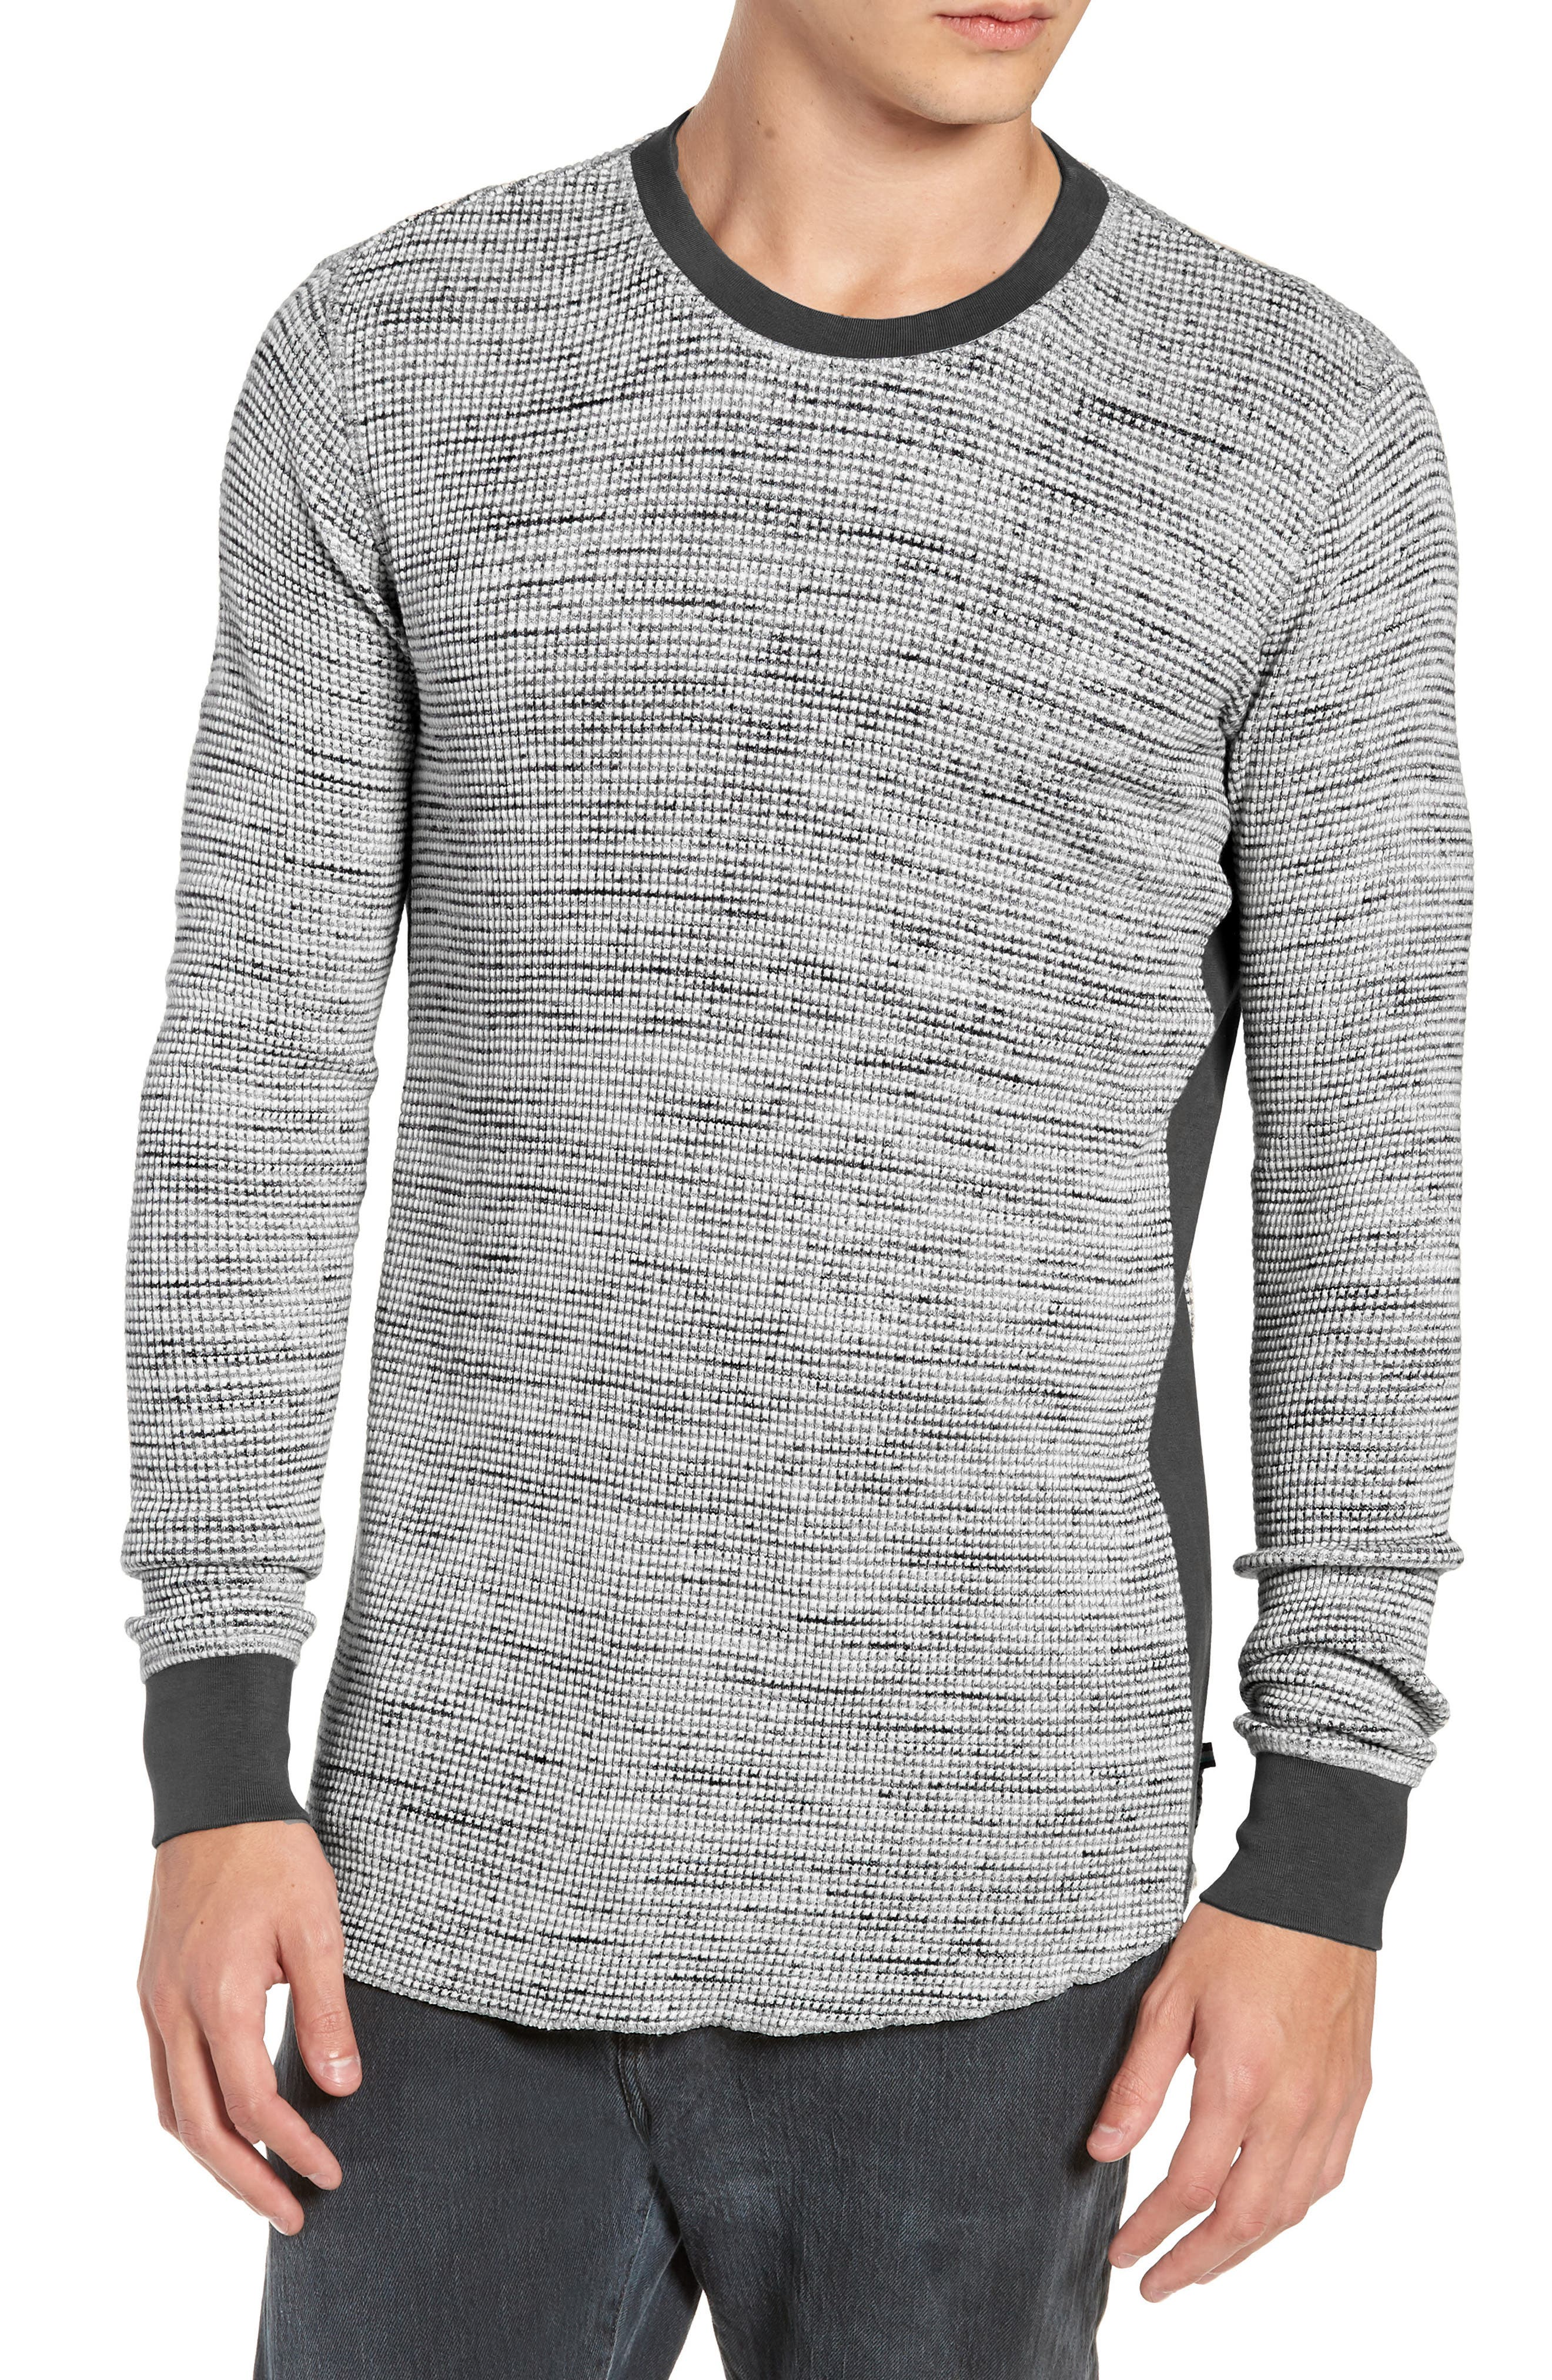 Neps Longline Thermal Shirt,                         Main,                         color, 020